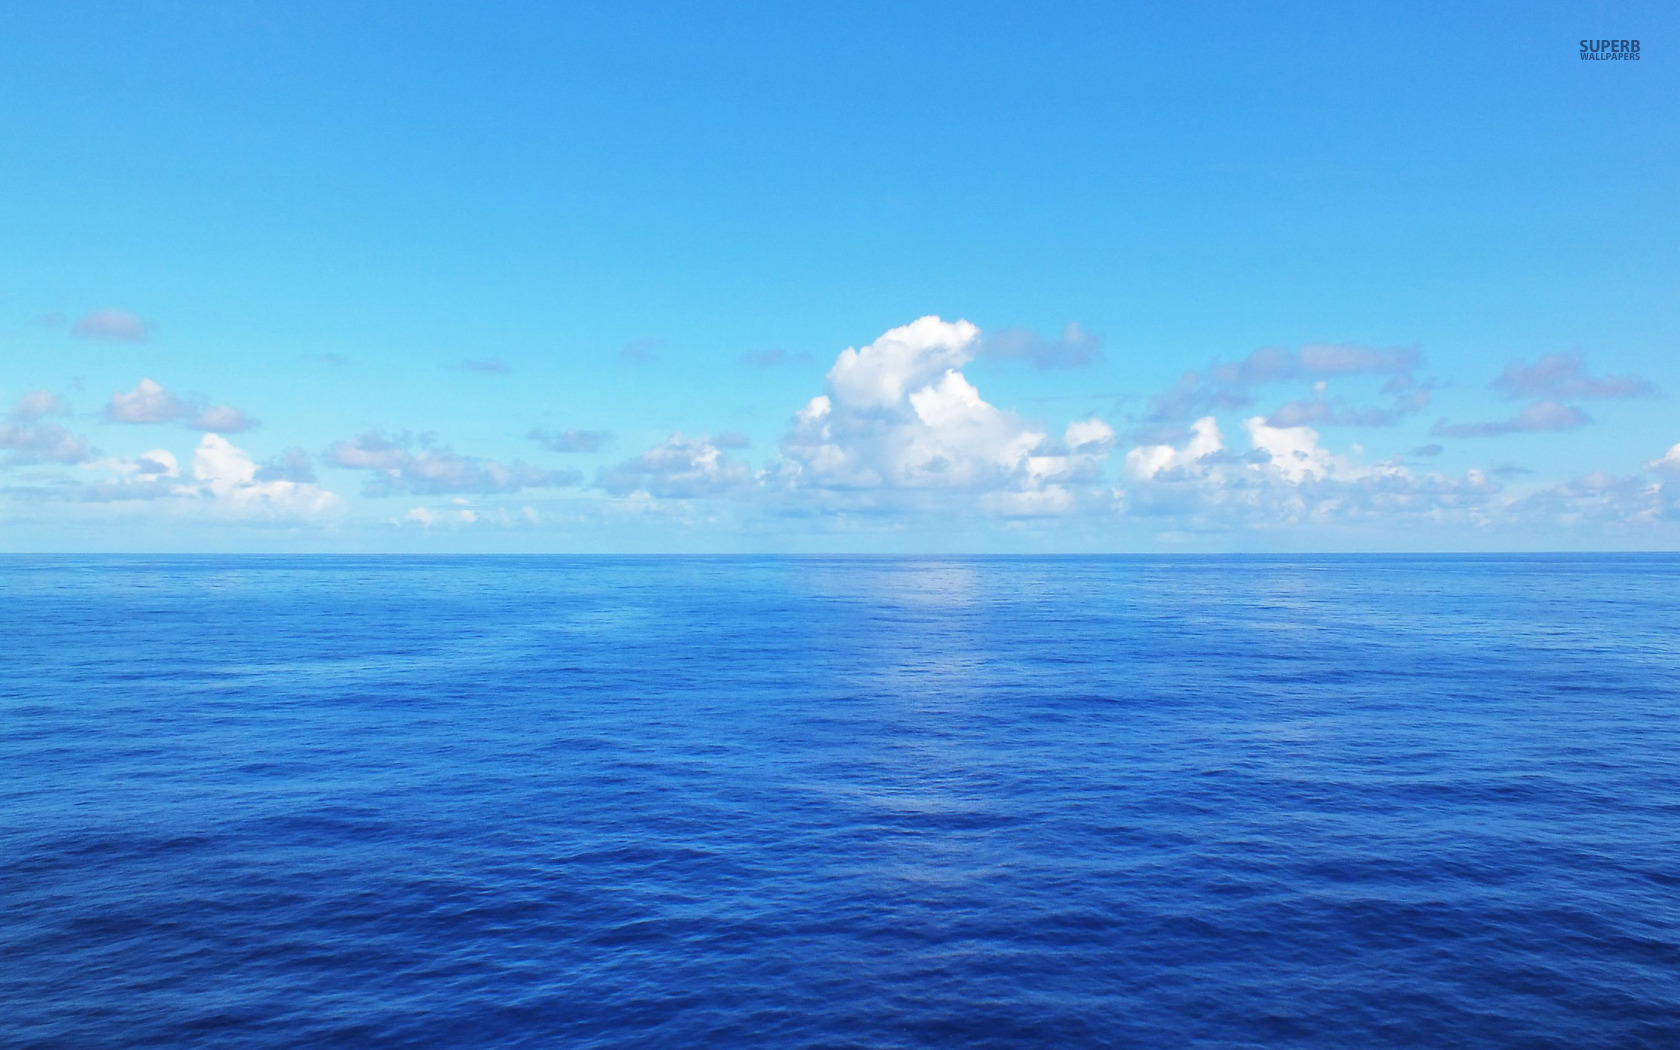 Blue ocean wallpaper 1680x1050